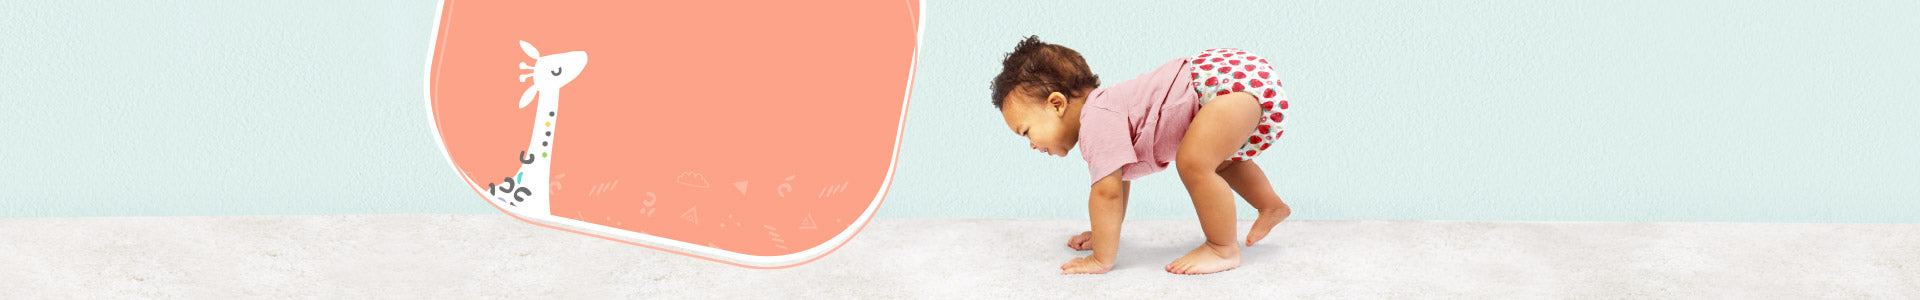 miosolo all in one nappy collection page banner with three miosolos